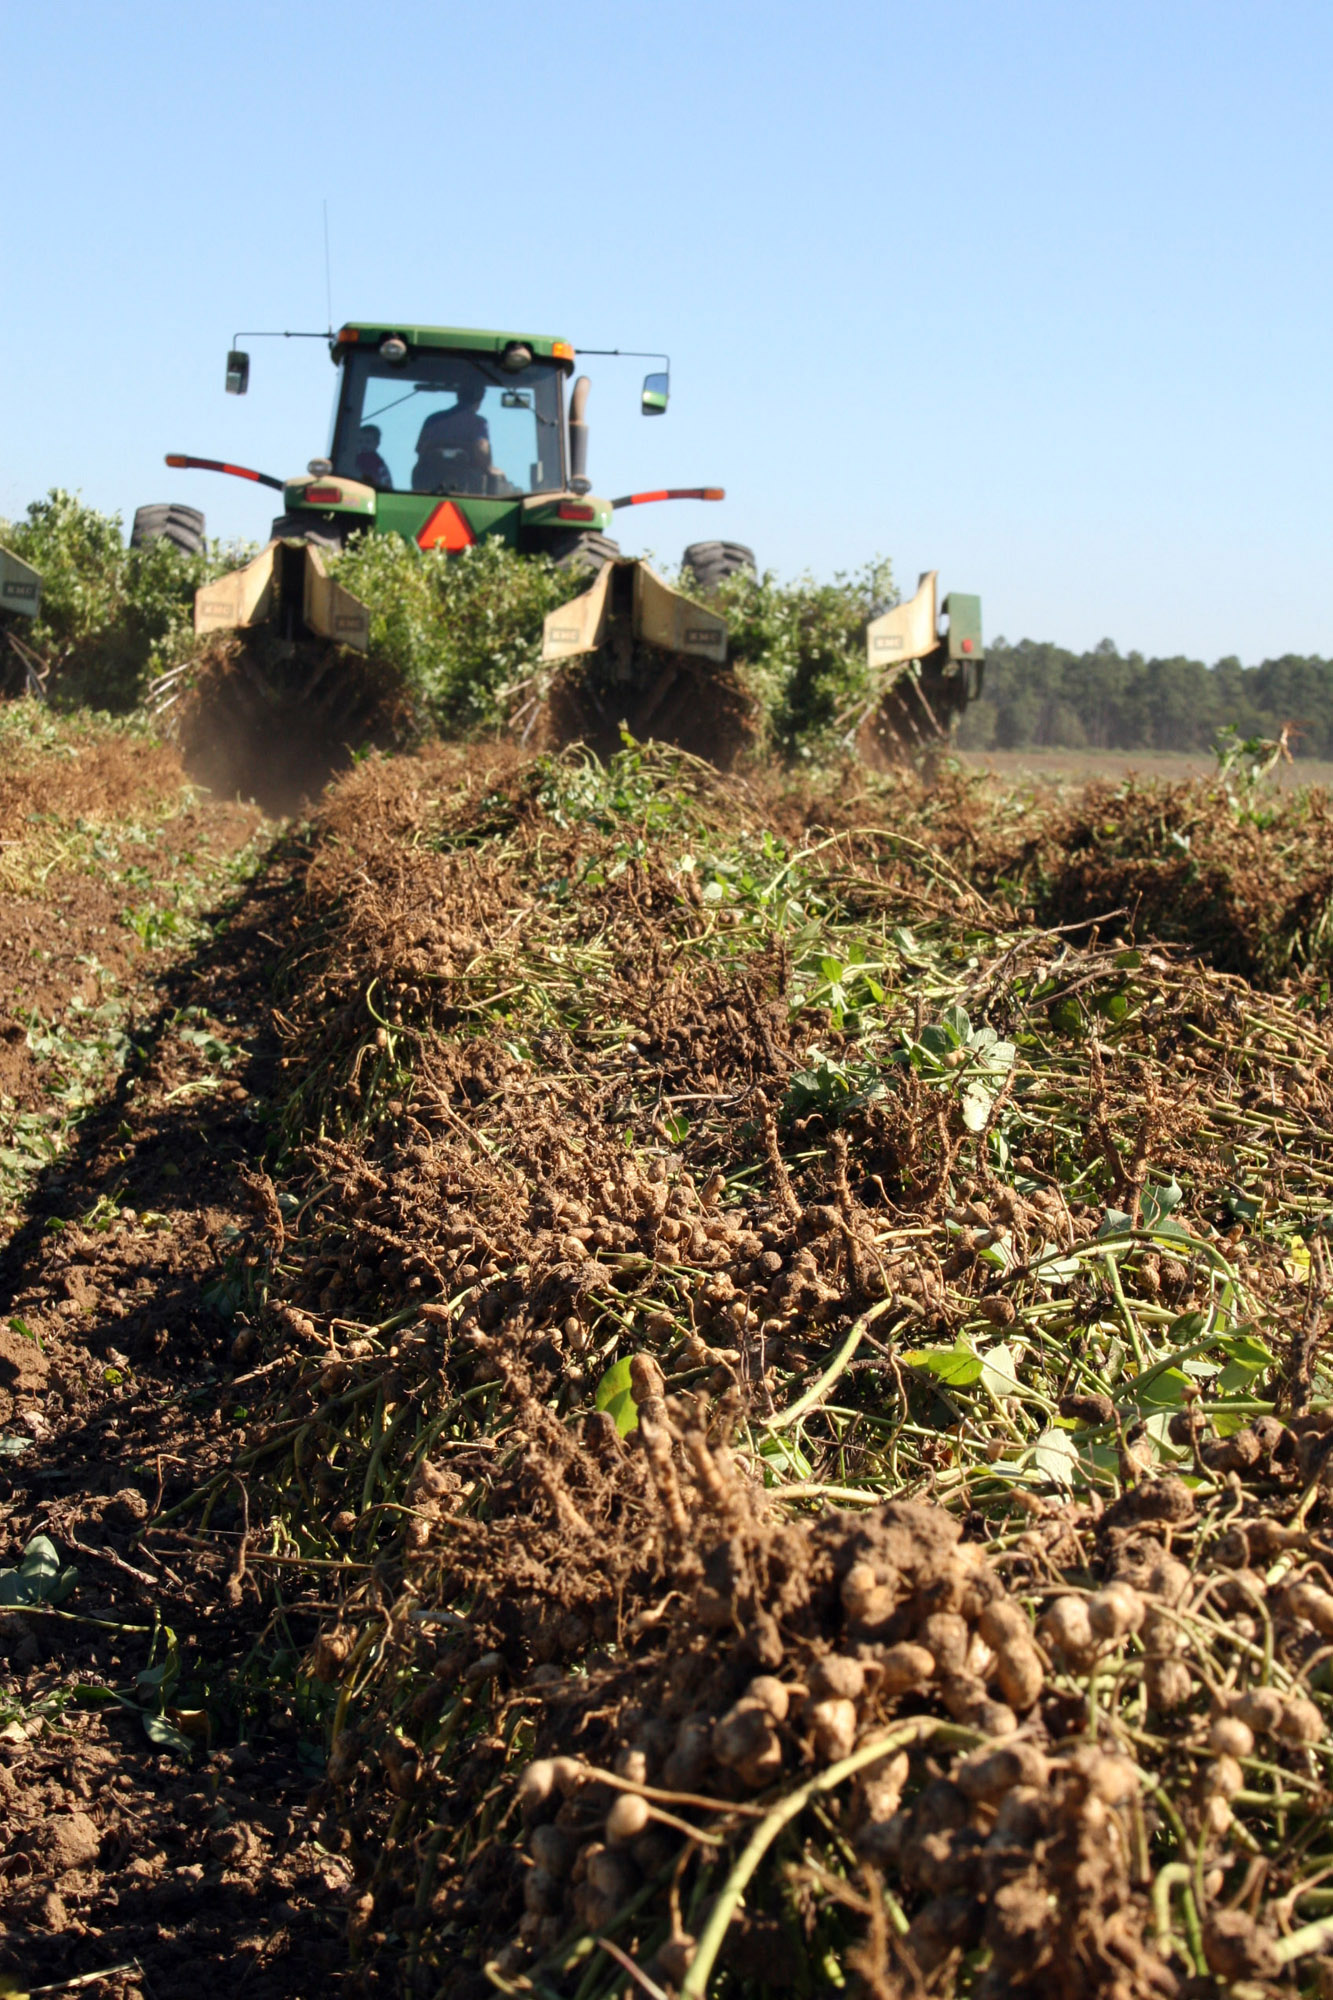 Georgia's pecan and tobacco crop are surprisingly good this year. But Georgia's hotter-than-normal summer has hurt crops like peanuts and cotton as harvest time nears.